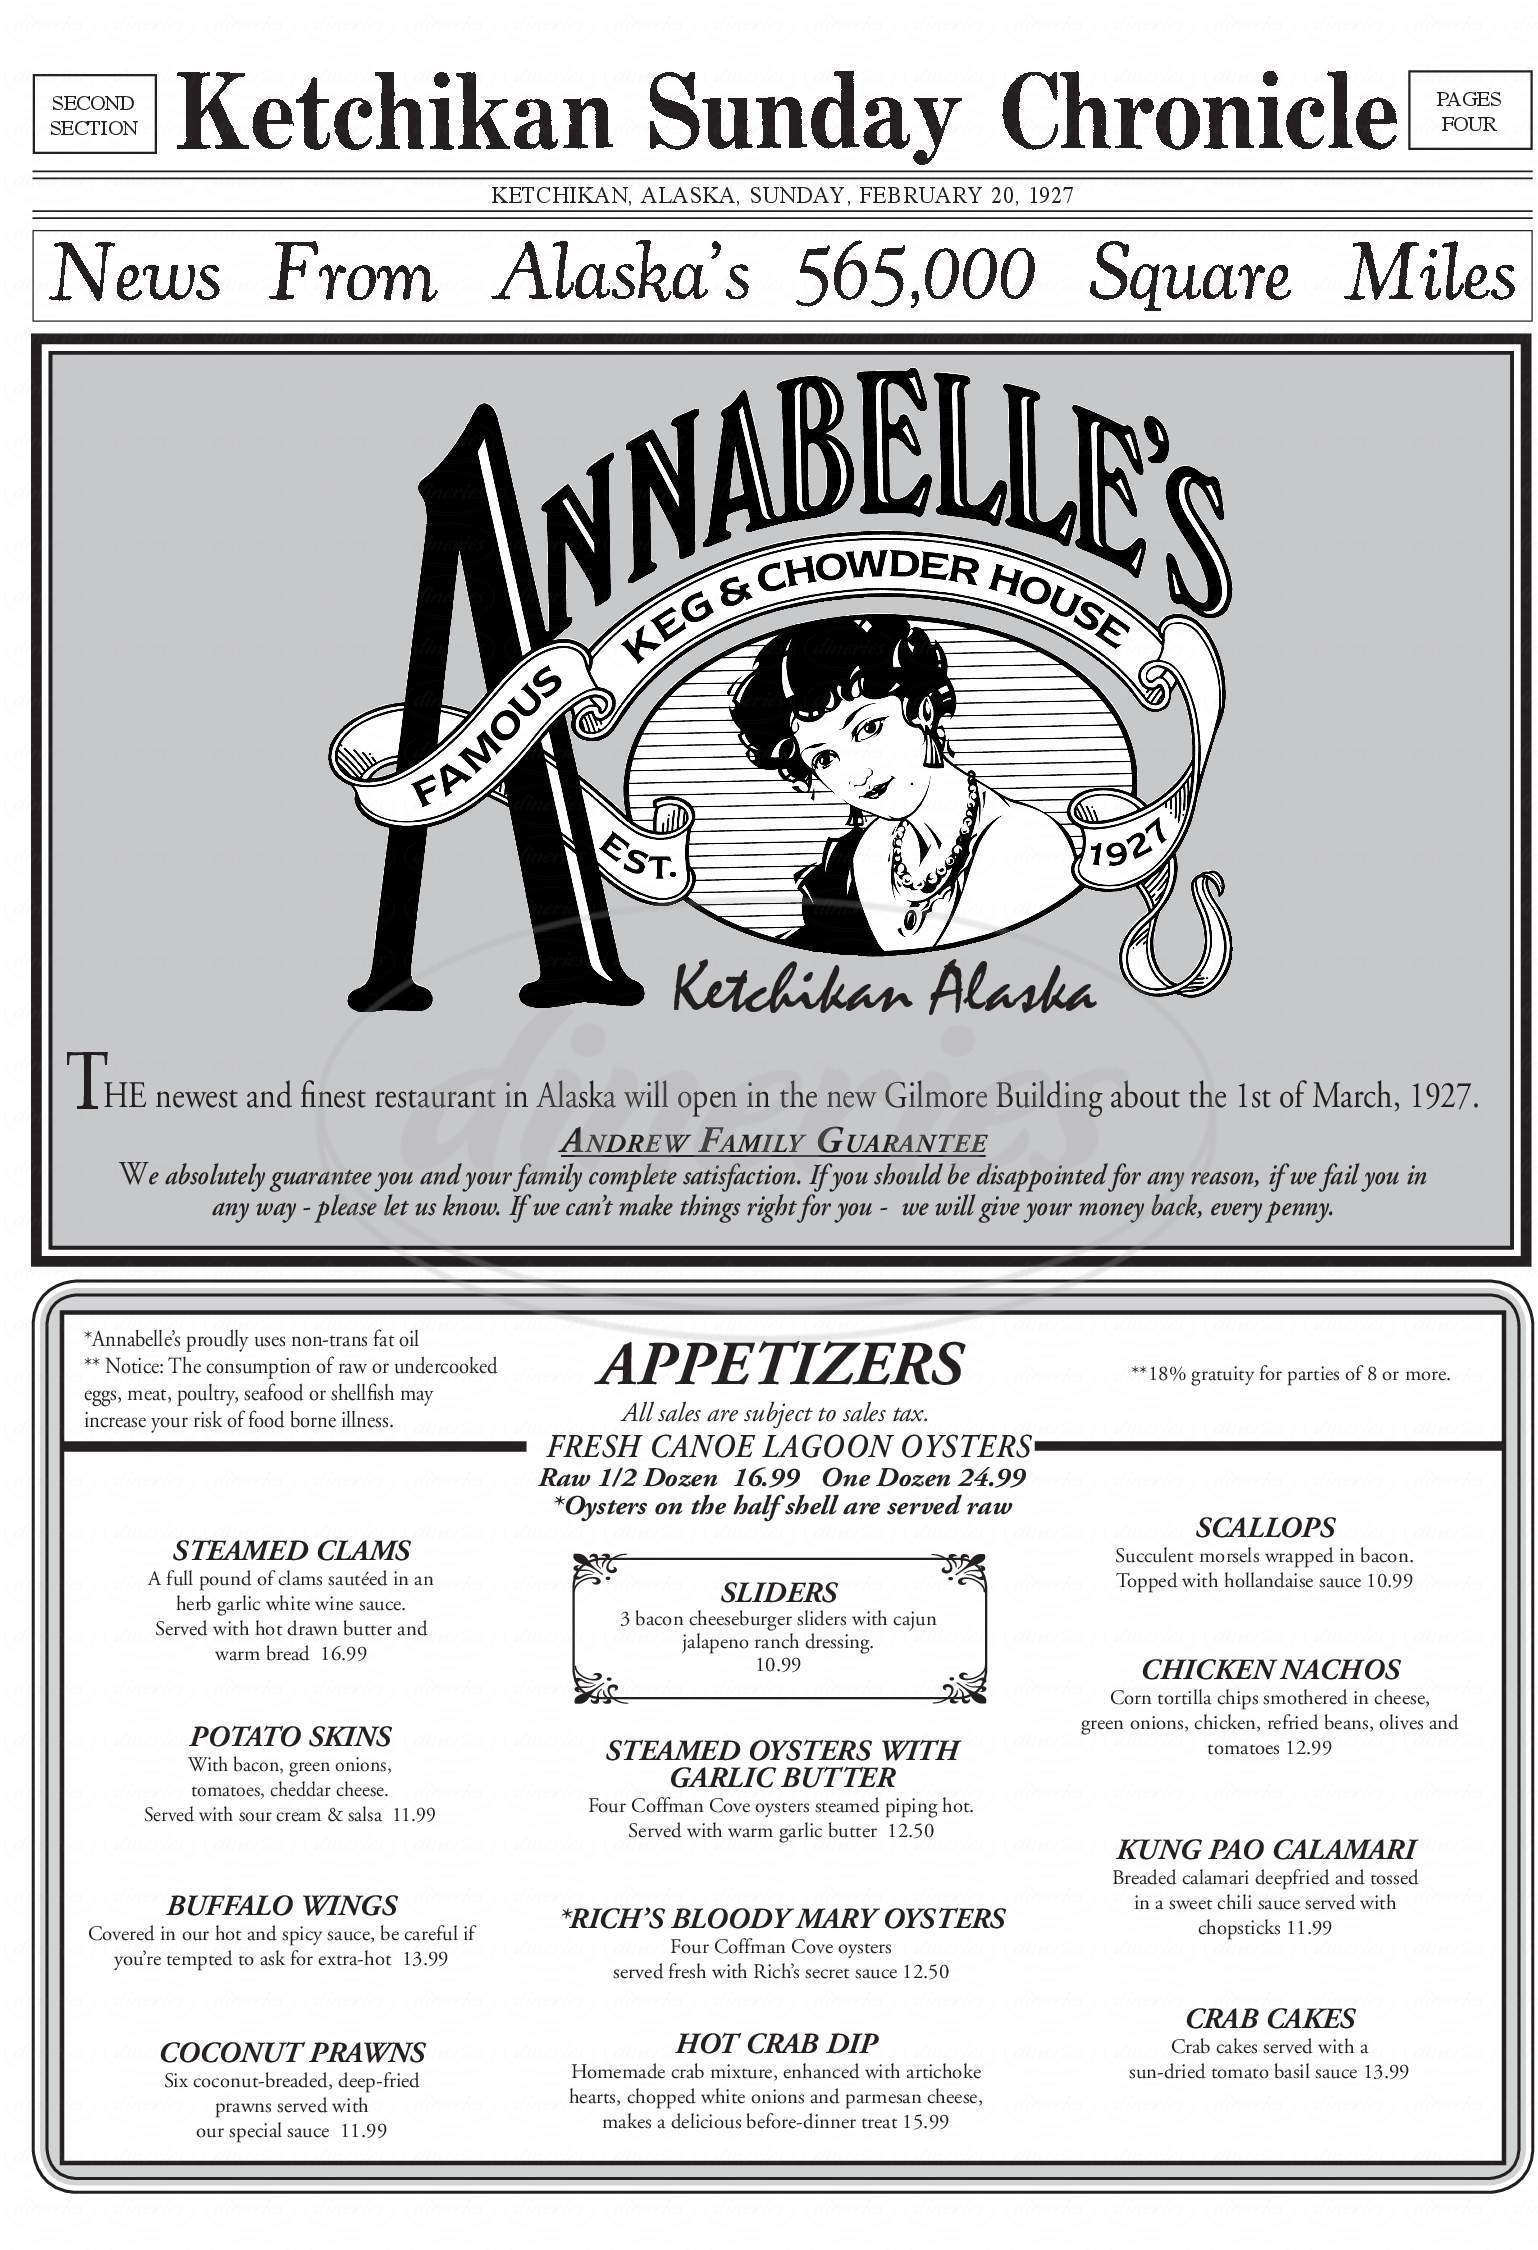 menu for Annabelle's Keg and Chowder House